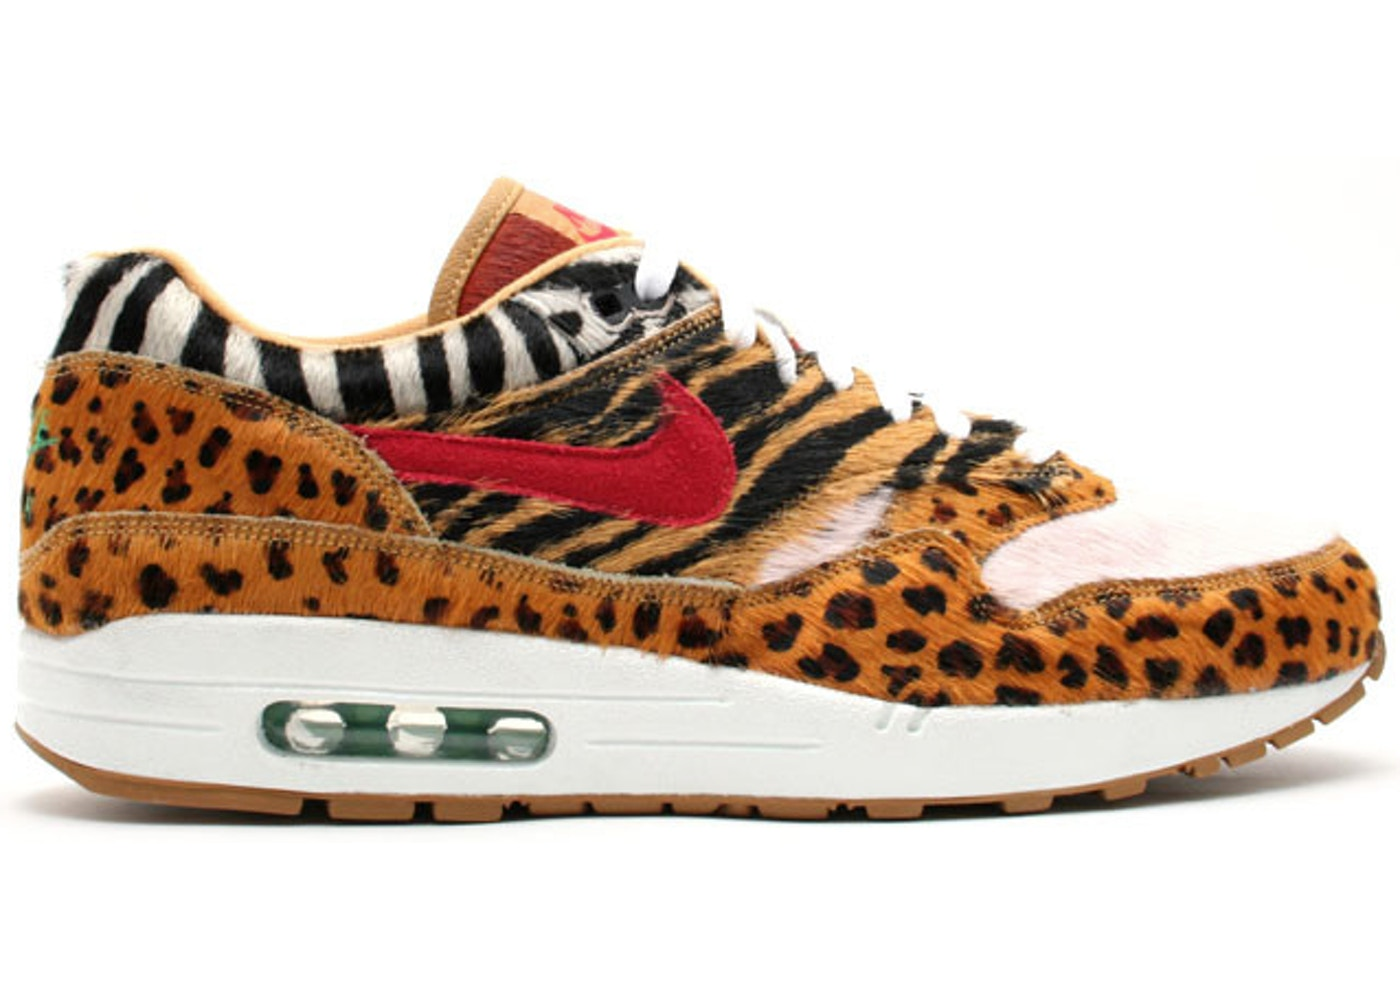 9b551f2e48 Air Max 1 Animal Pack - 315763-761